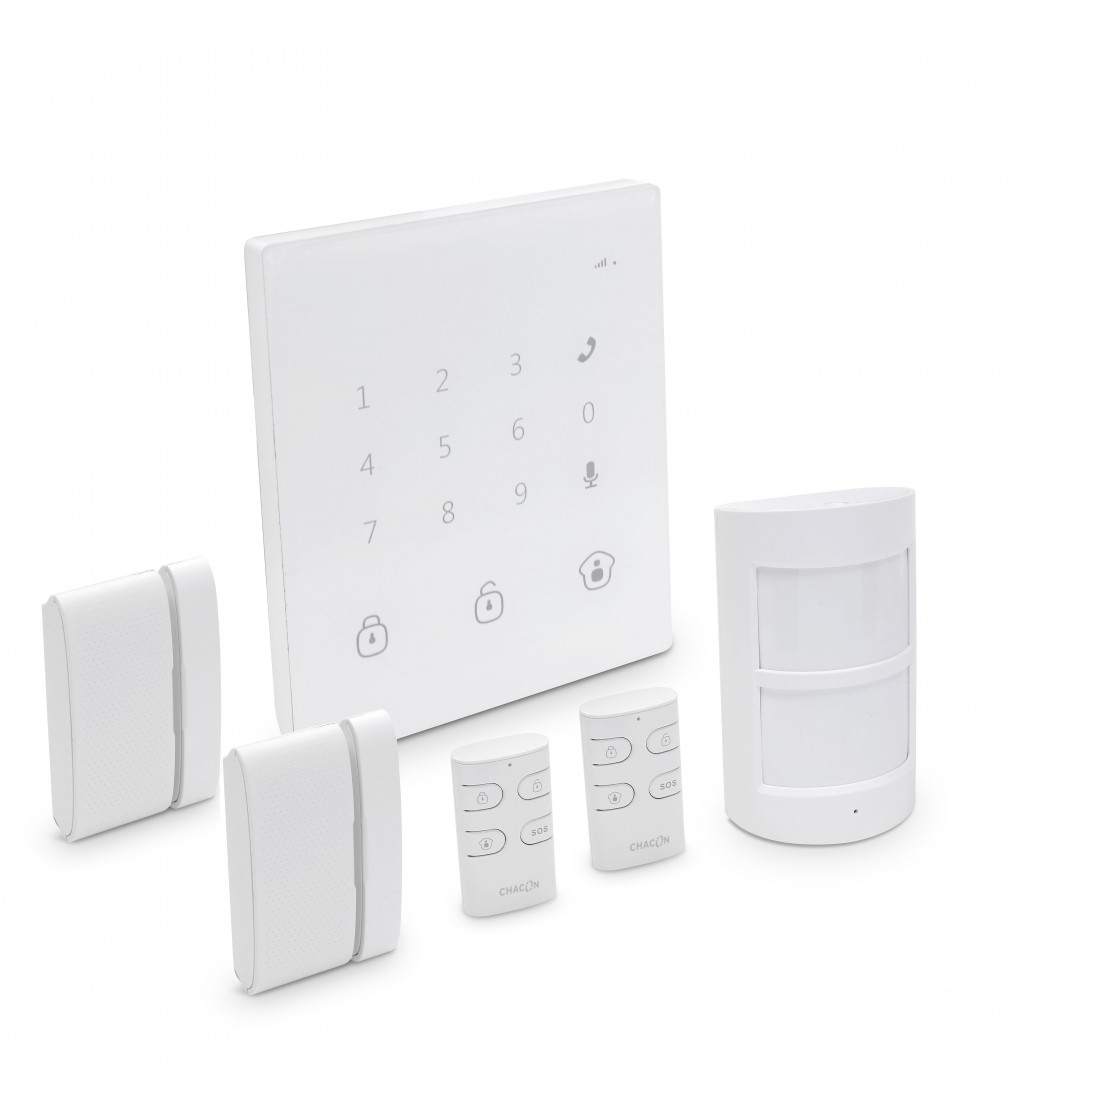 Wireless GSM/SMS alarm system